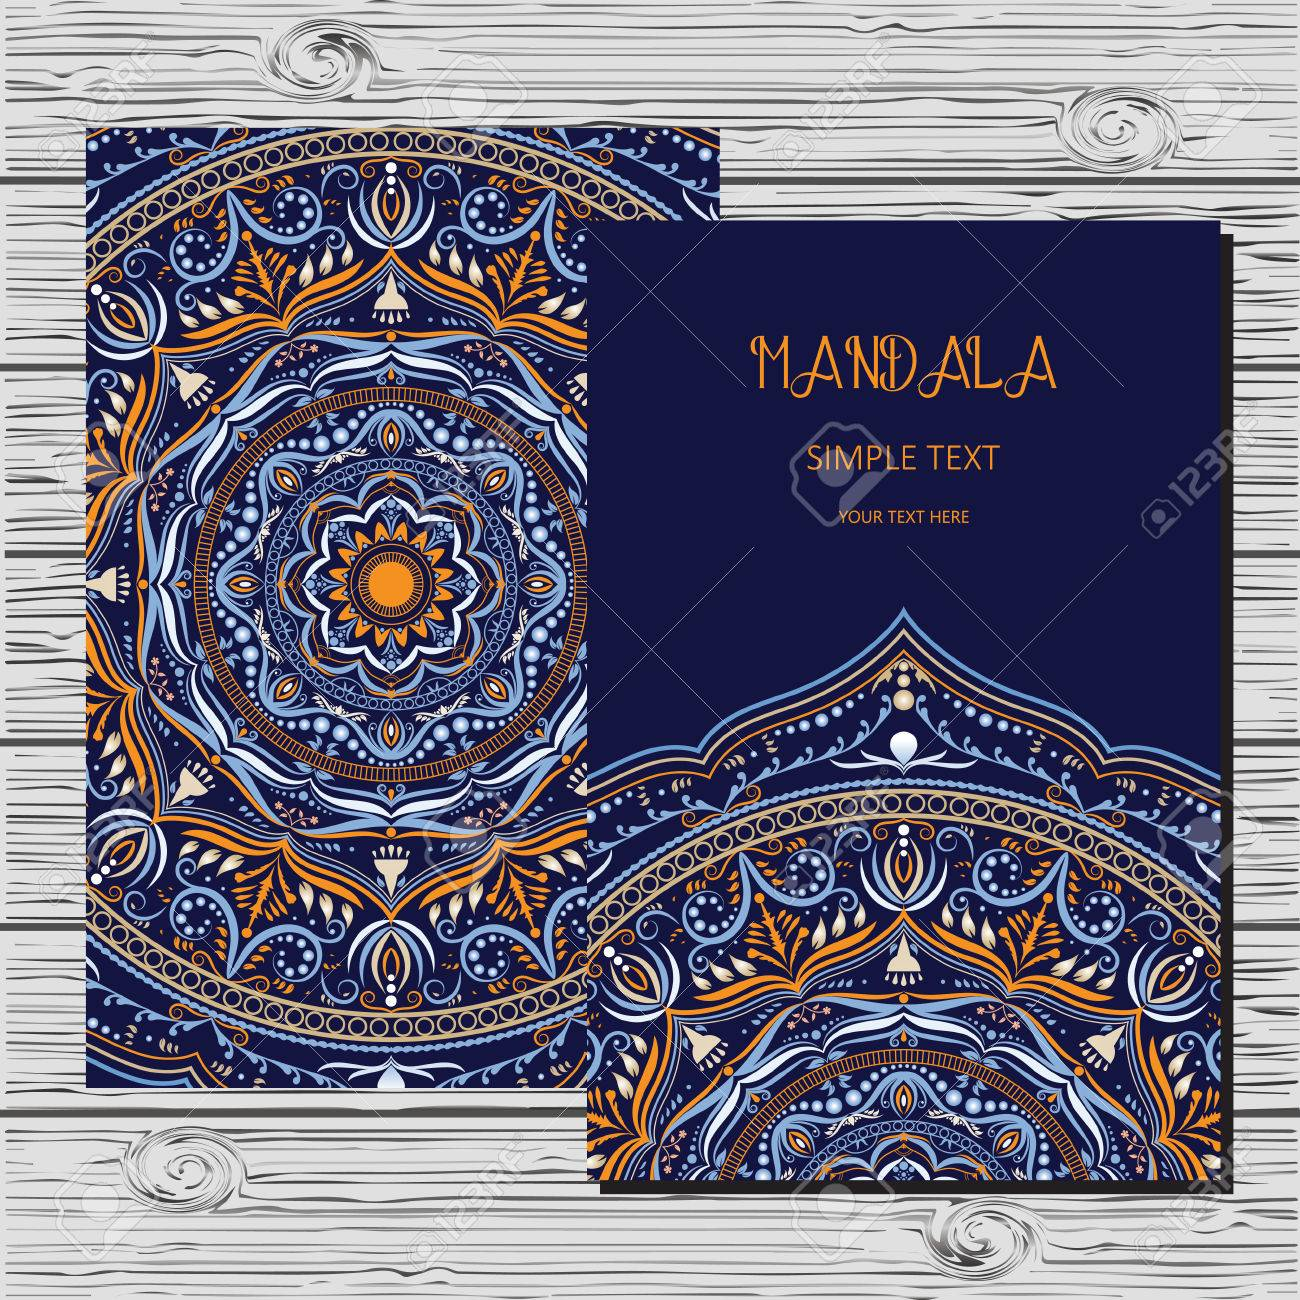 Vector Flyer Template With Hand Drawn Mandala Outline Floral - Save the date flyer template free